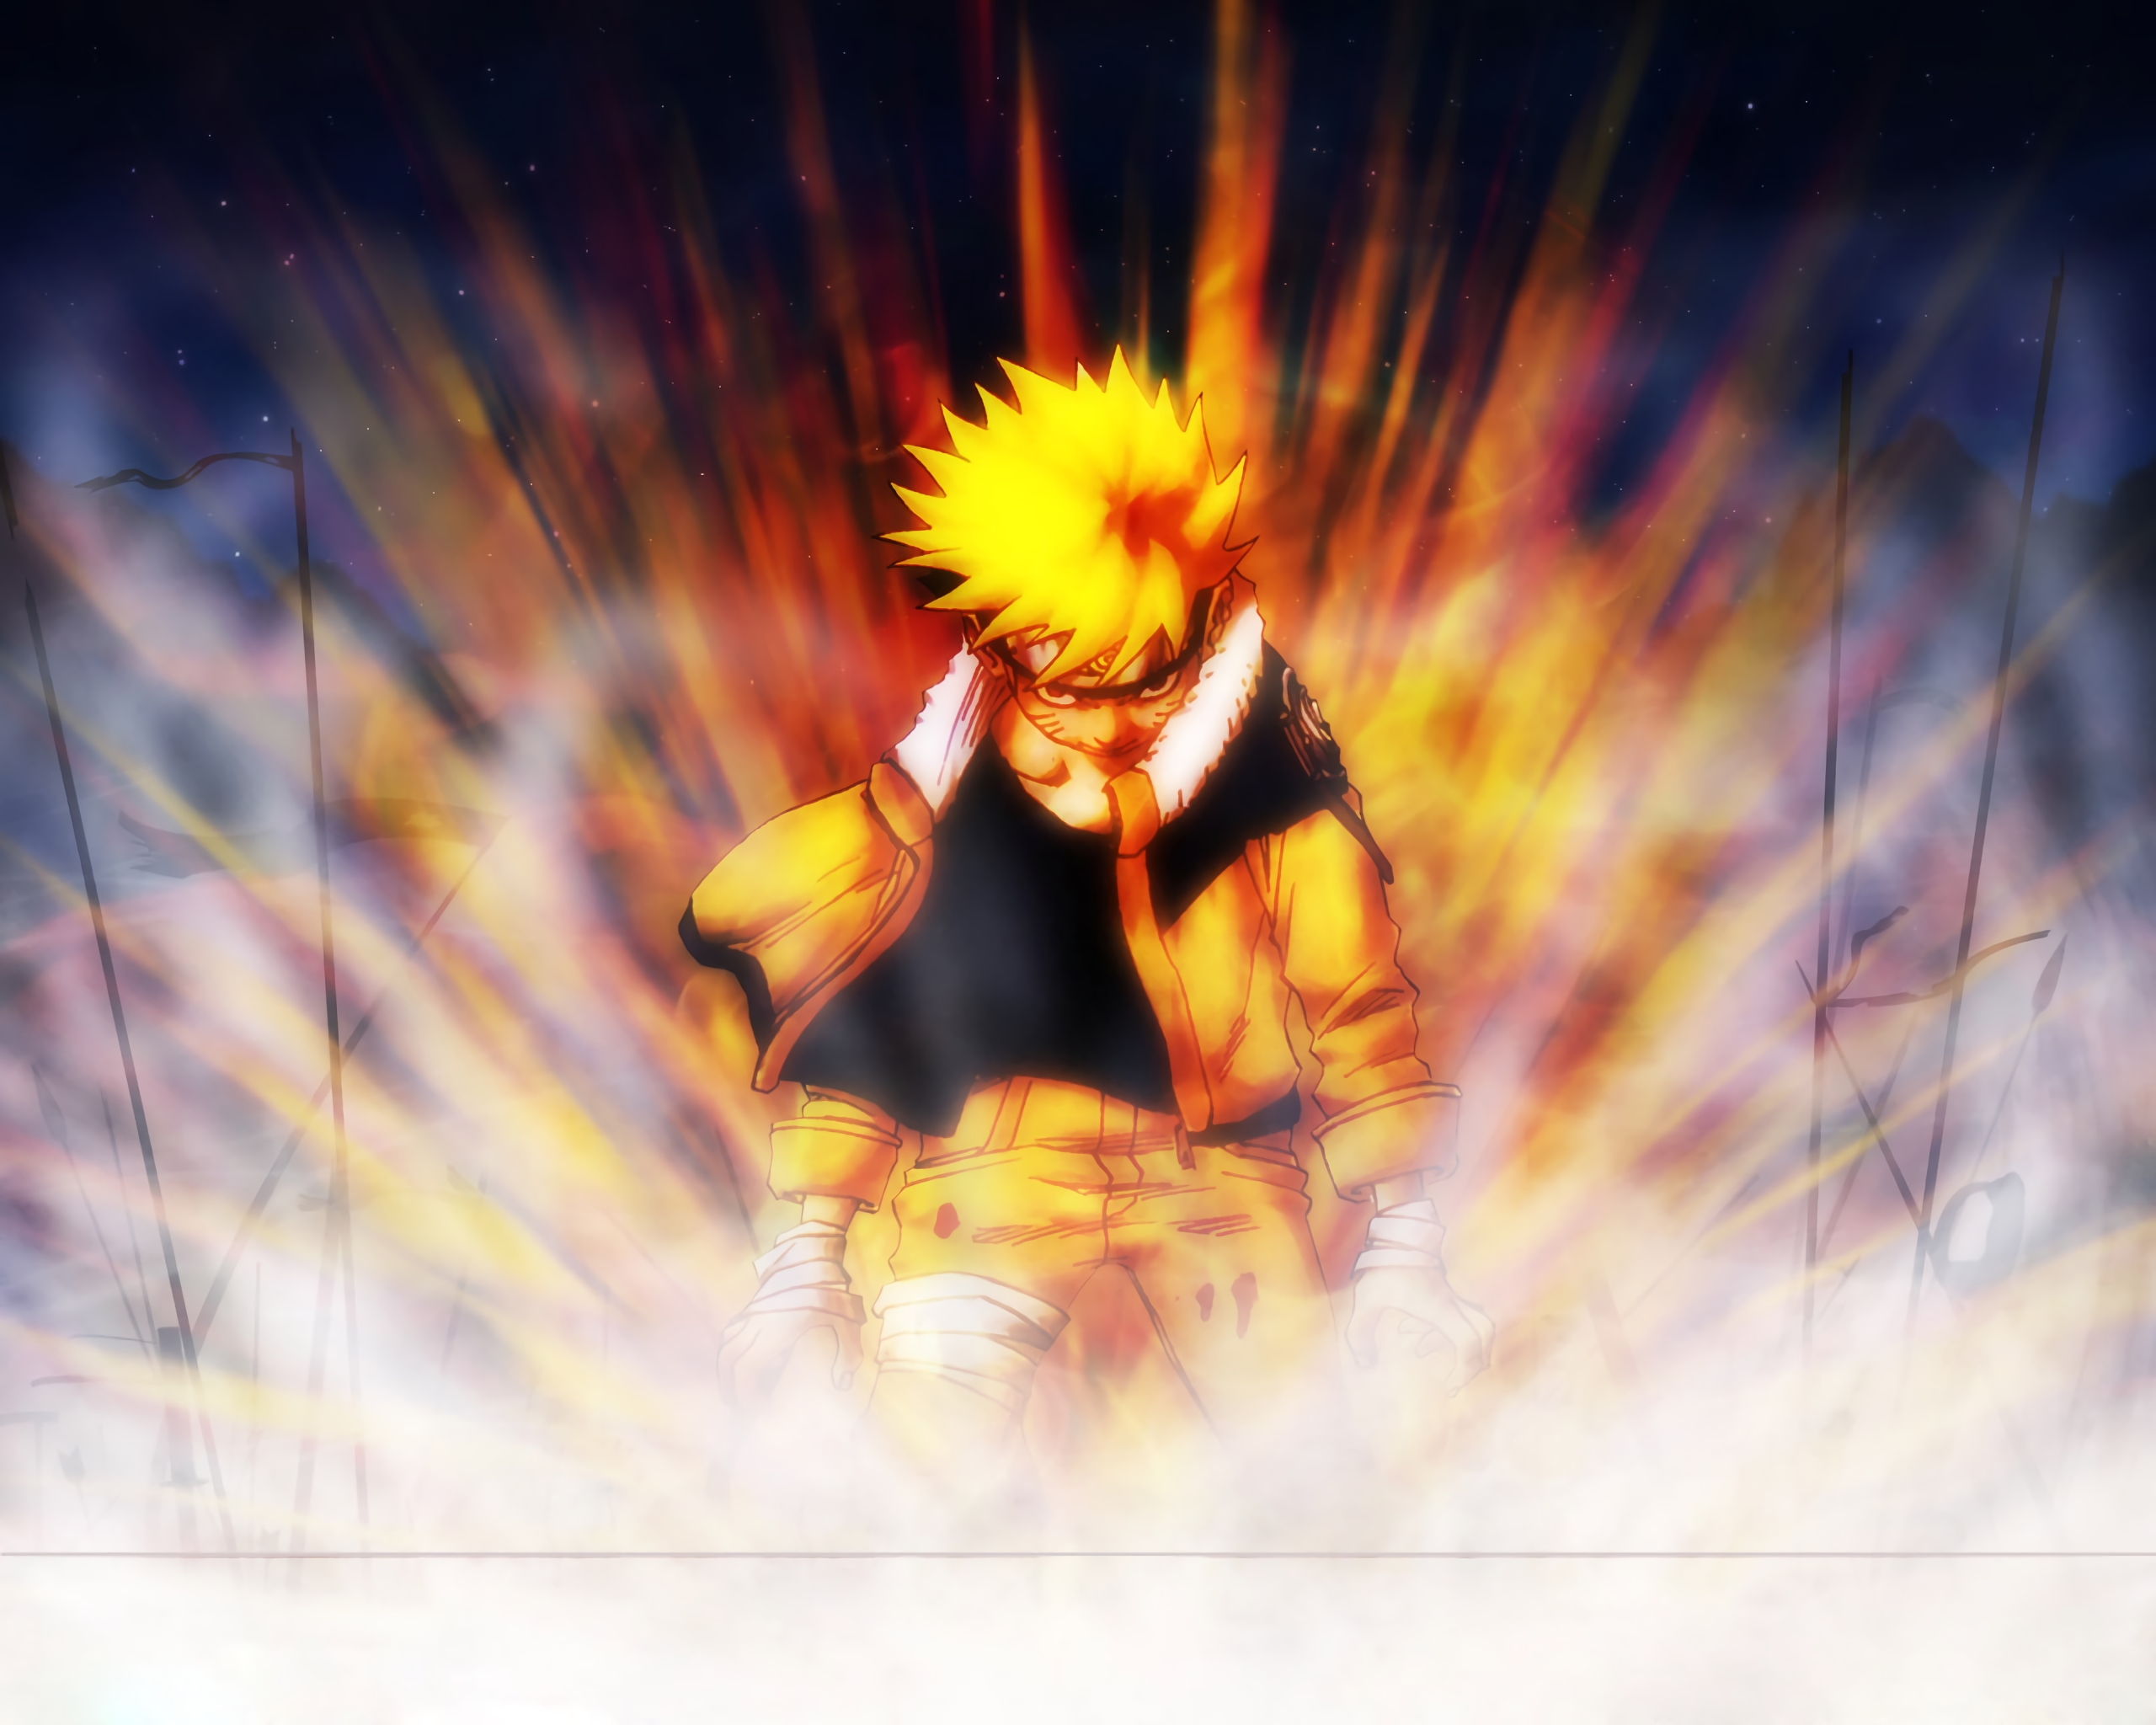 10 Most Popular Cool Naruto Shippuden Wallpapers Full Hd 1080p For